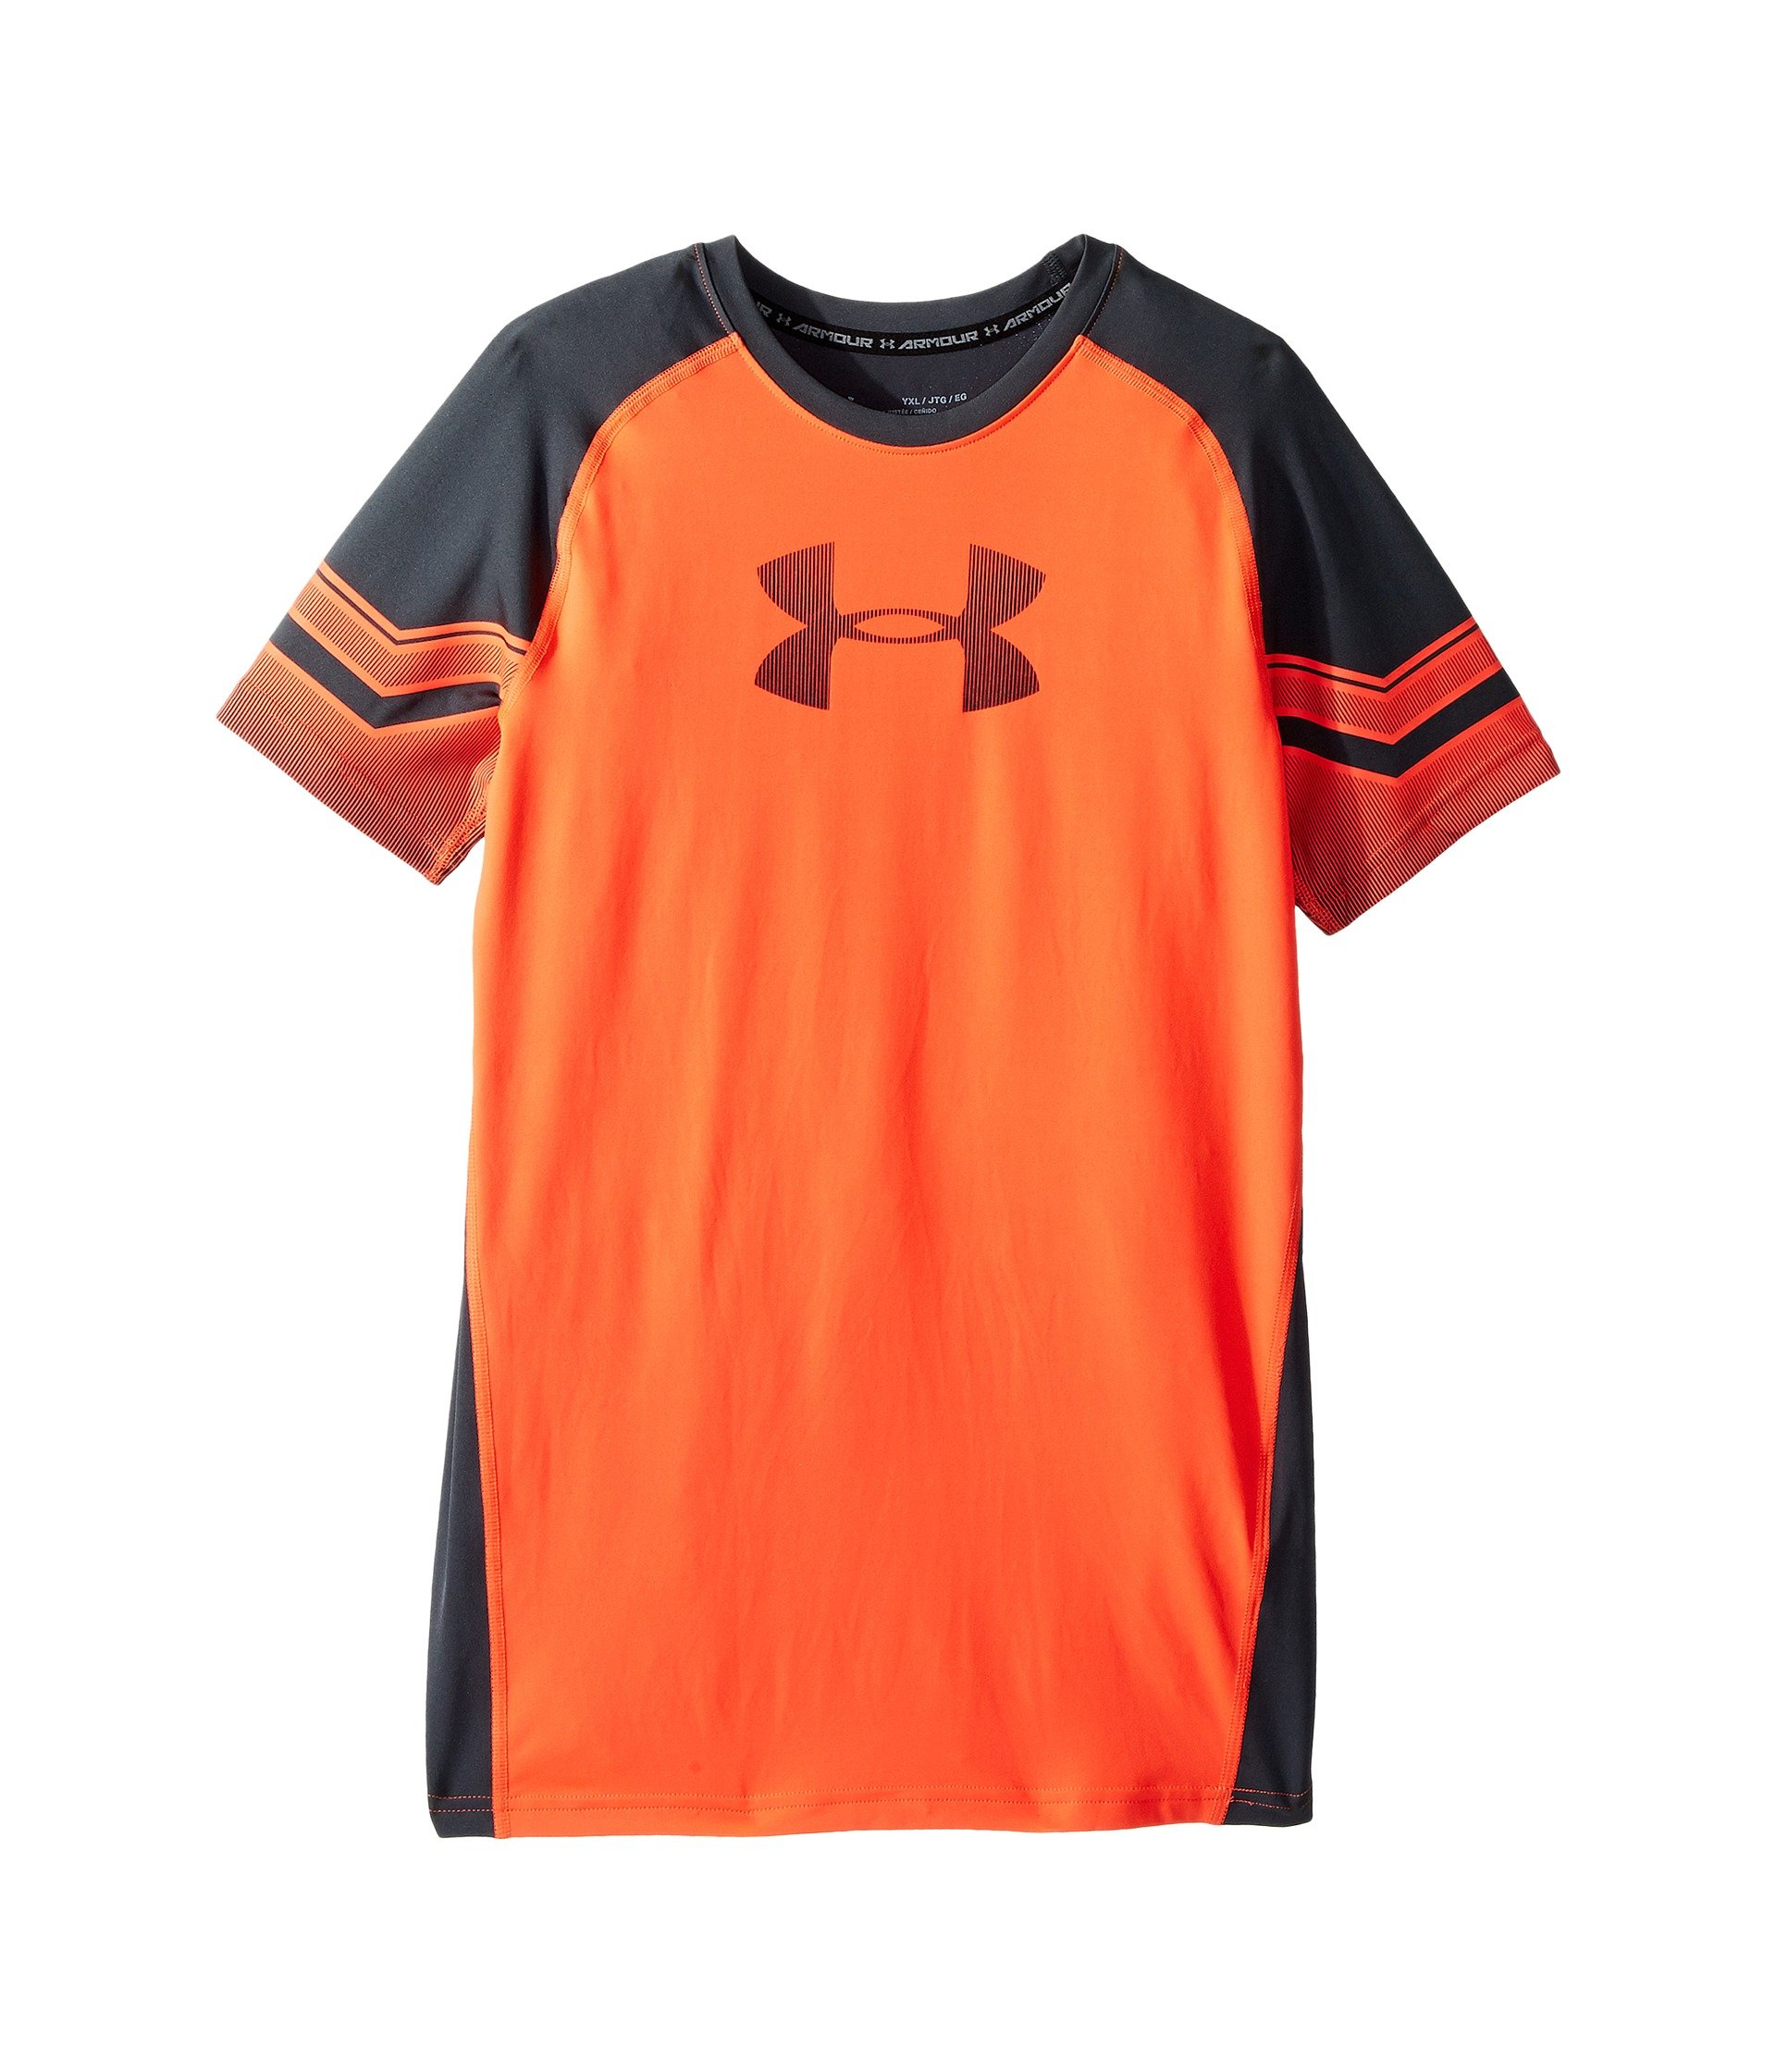 Under Armour Kids Boy's Armour Graphic Short Sleeve (Big Kids) Neon Coral/Stealth Gray/Neon Coral Small